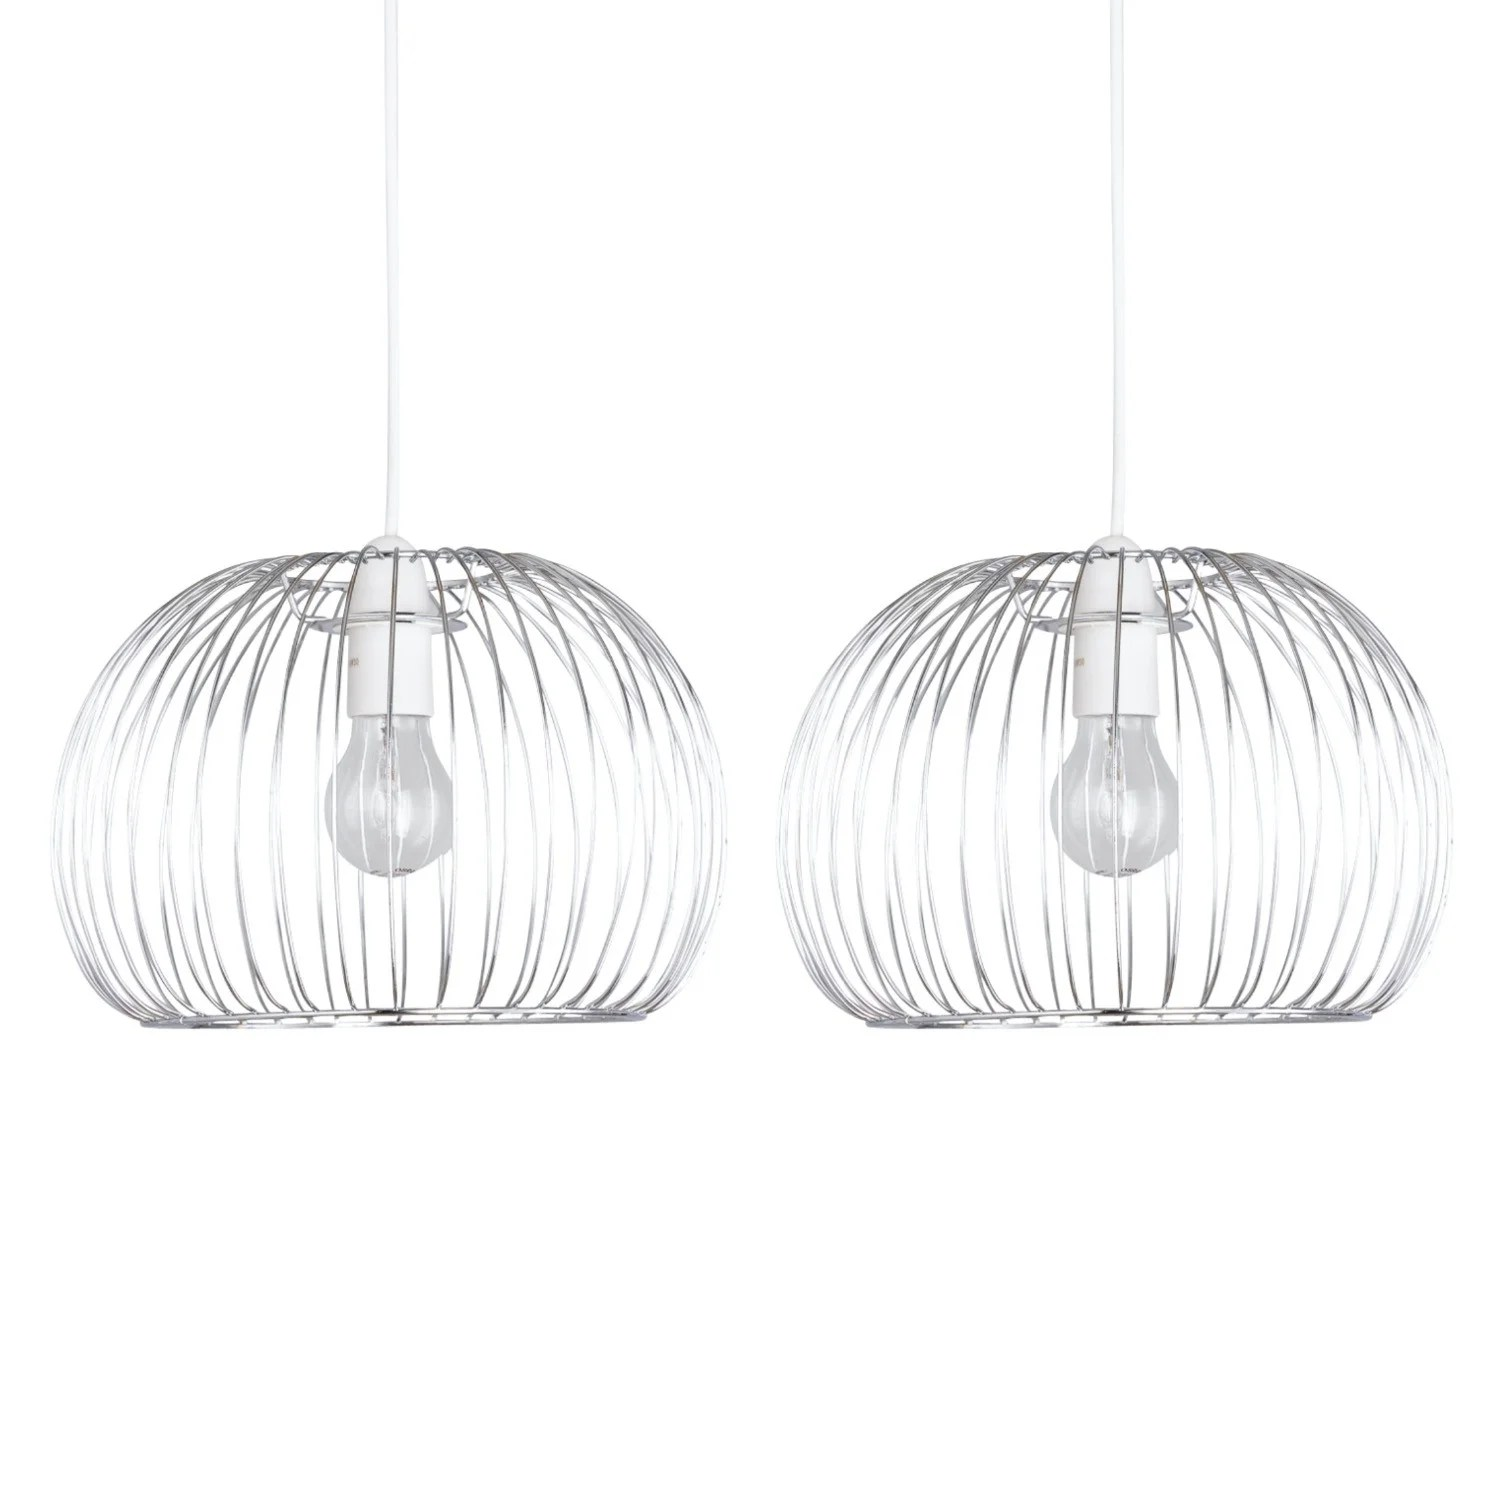 Set of 2 Polished Chrome Wire Easy Fit Light Shades